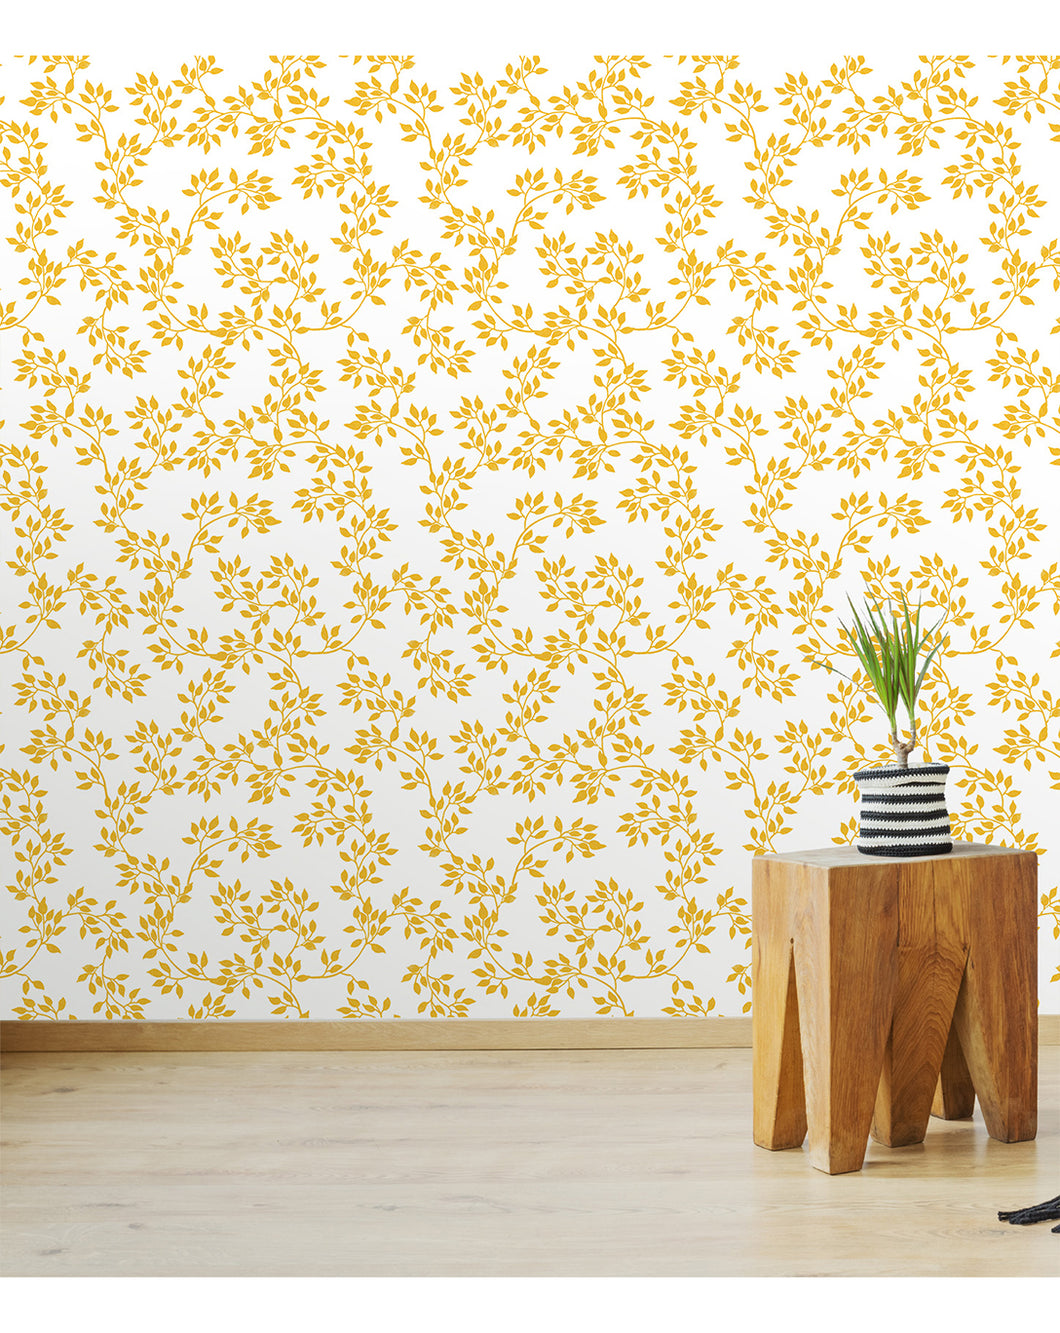 Temporary Self Adhesive Luxury Gold Color Leaves Removable Wallpaper ...